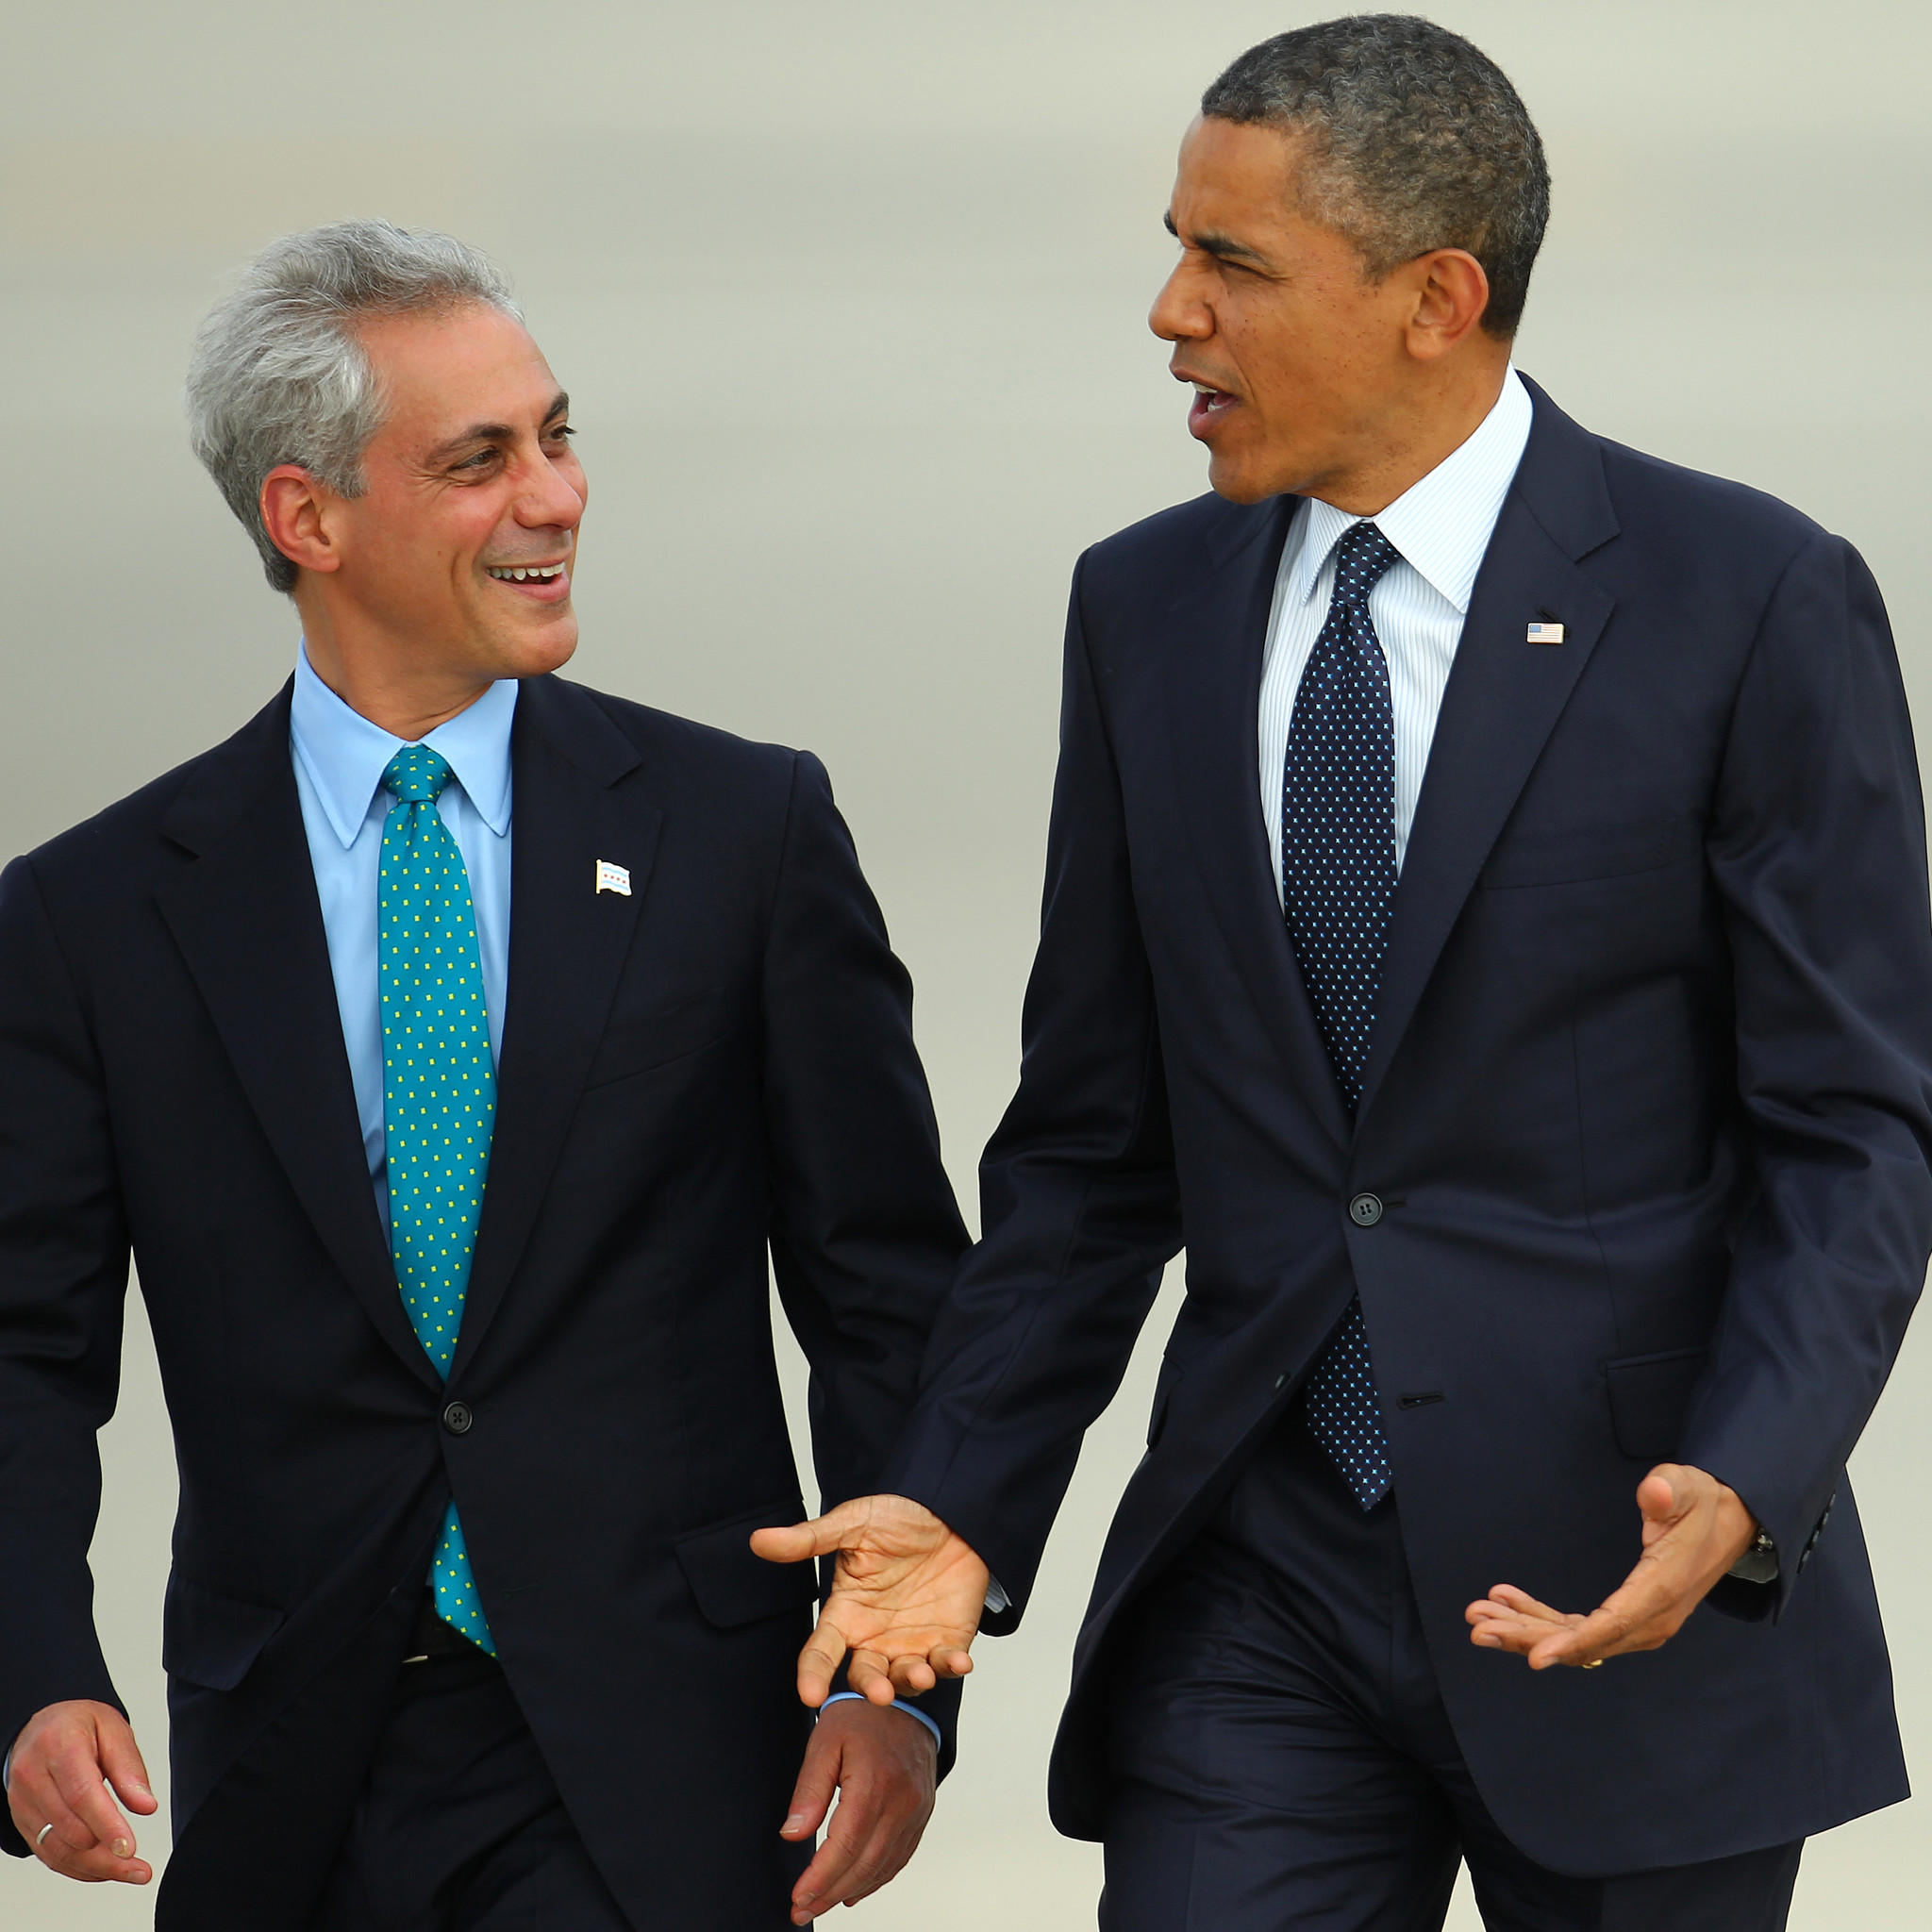 President Barack Obama walks with Mayor Rahm Emanuel, his first White House chief of staff, as he moves from Air Force One to Marine One shortly after landing in town for a pair of Democratic fundraisers Wednesday, May 29, 2013 in Chicago.